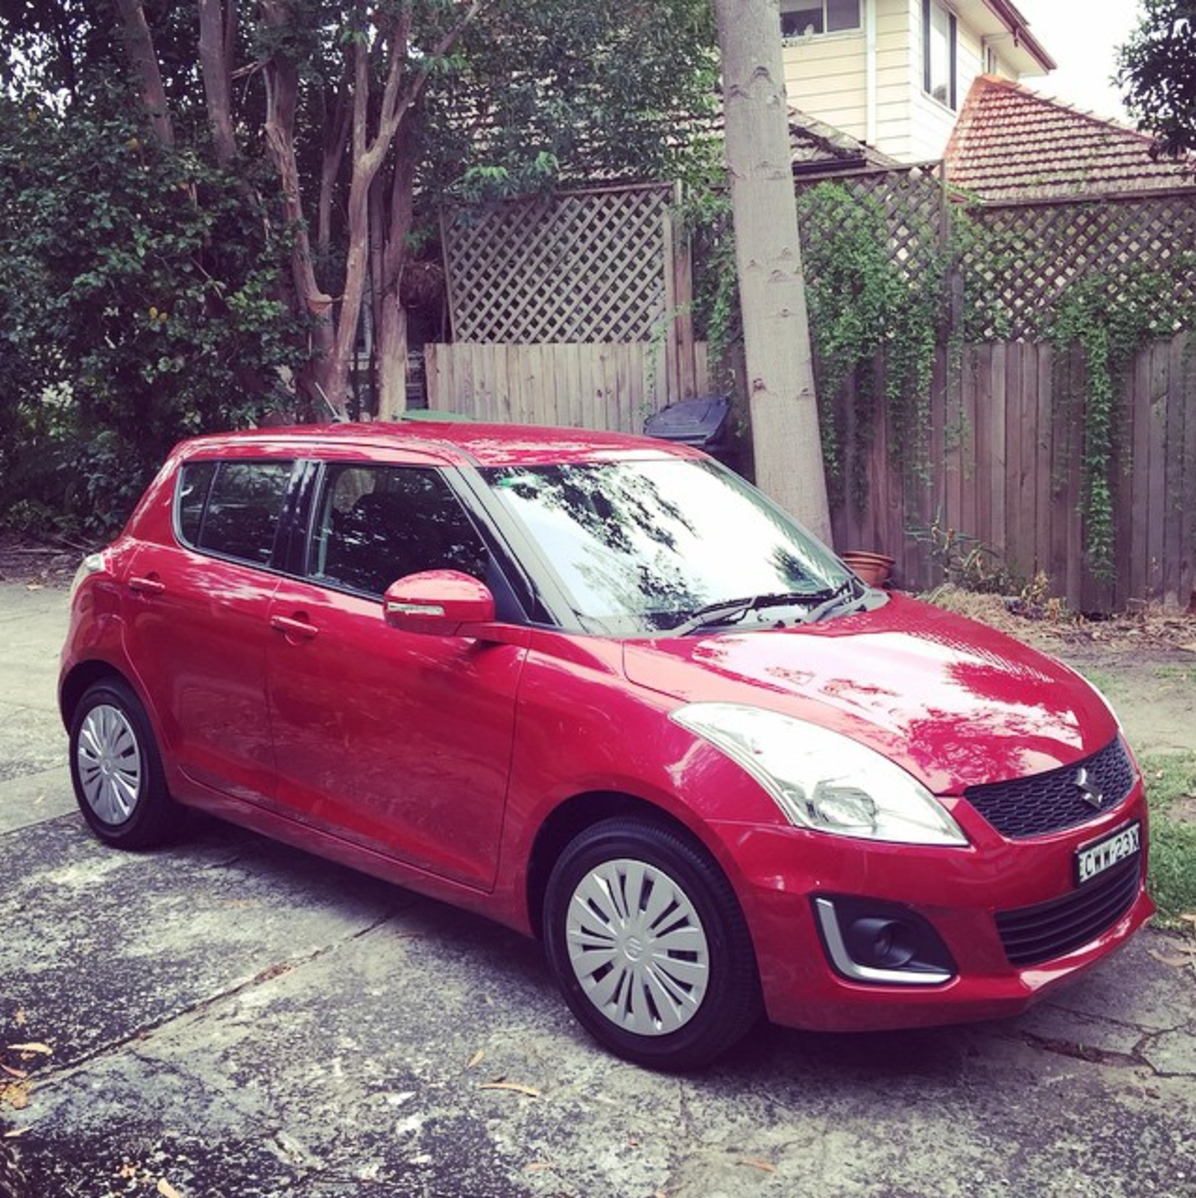 Picture of Rose's 2015 Suzuki Swift